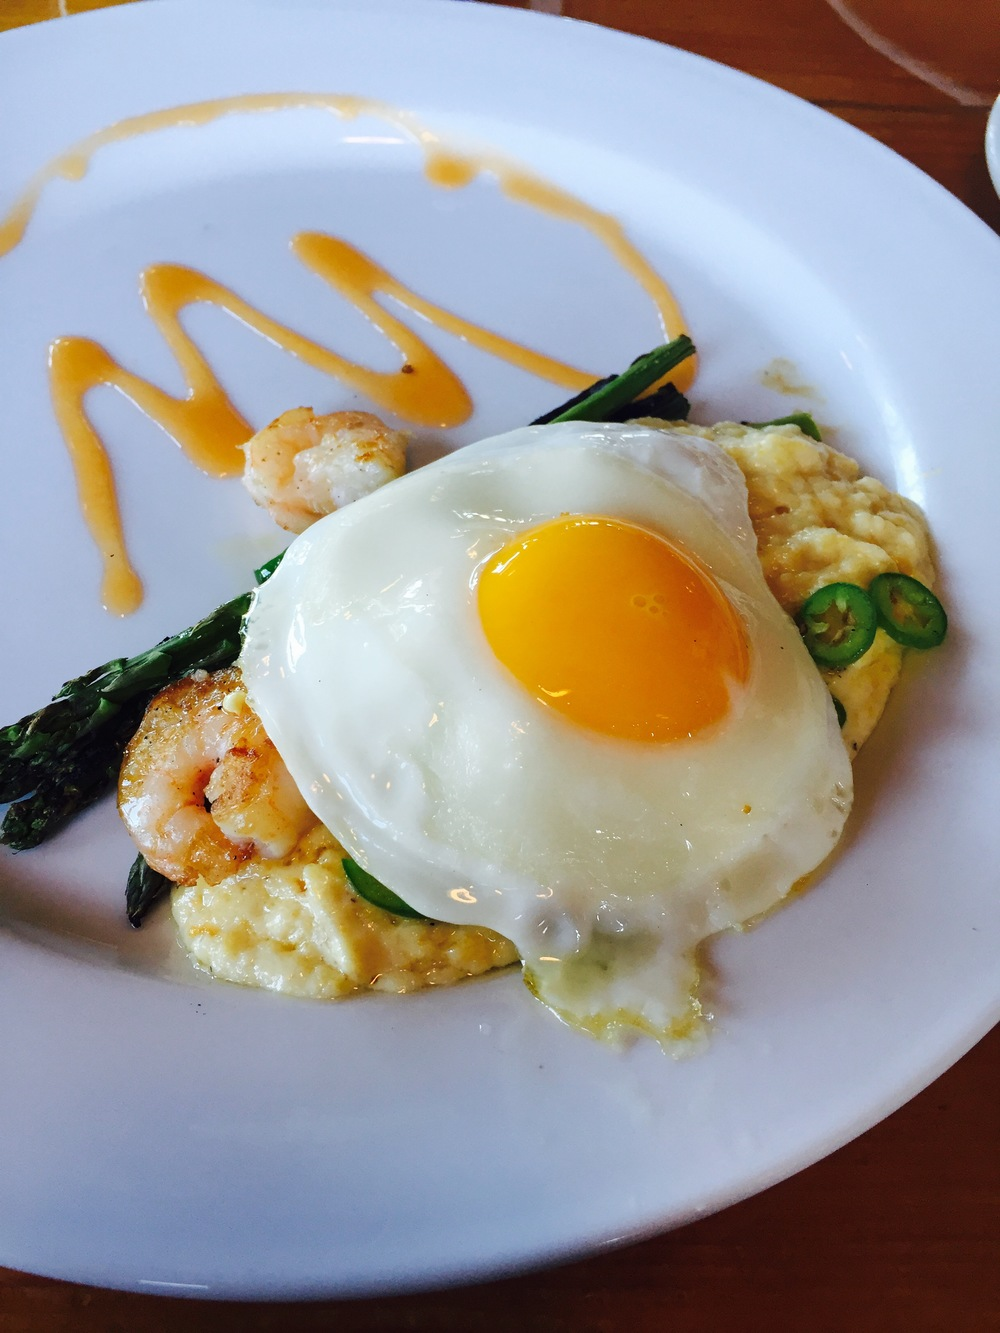 Shrimp n' Grits: chickpeas, asparagus, tomato, serrano, fried egg.